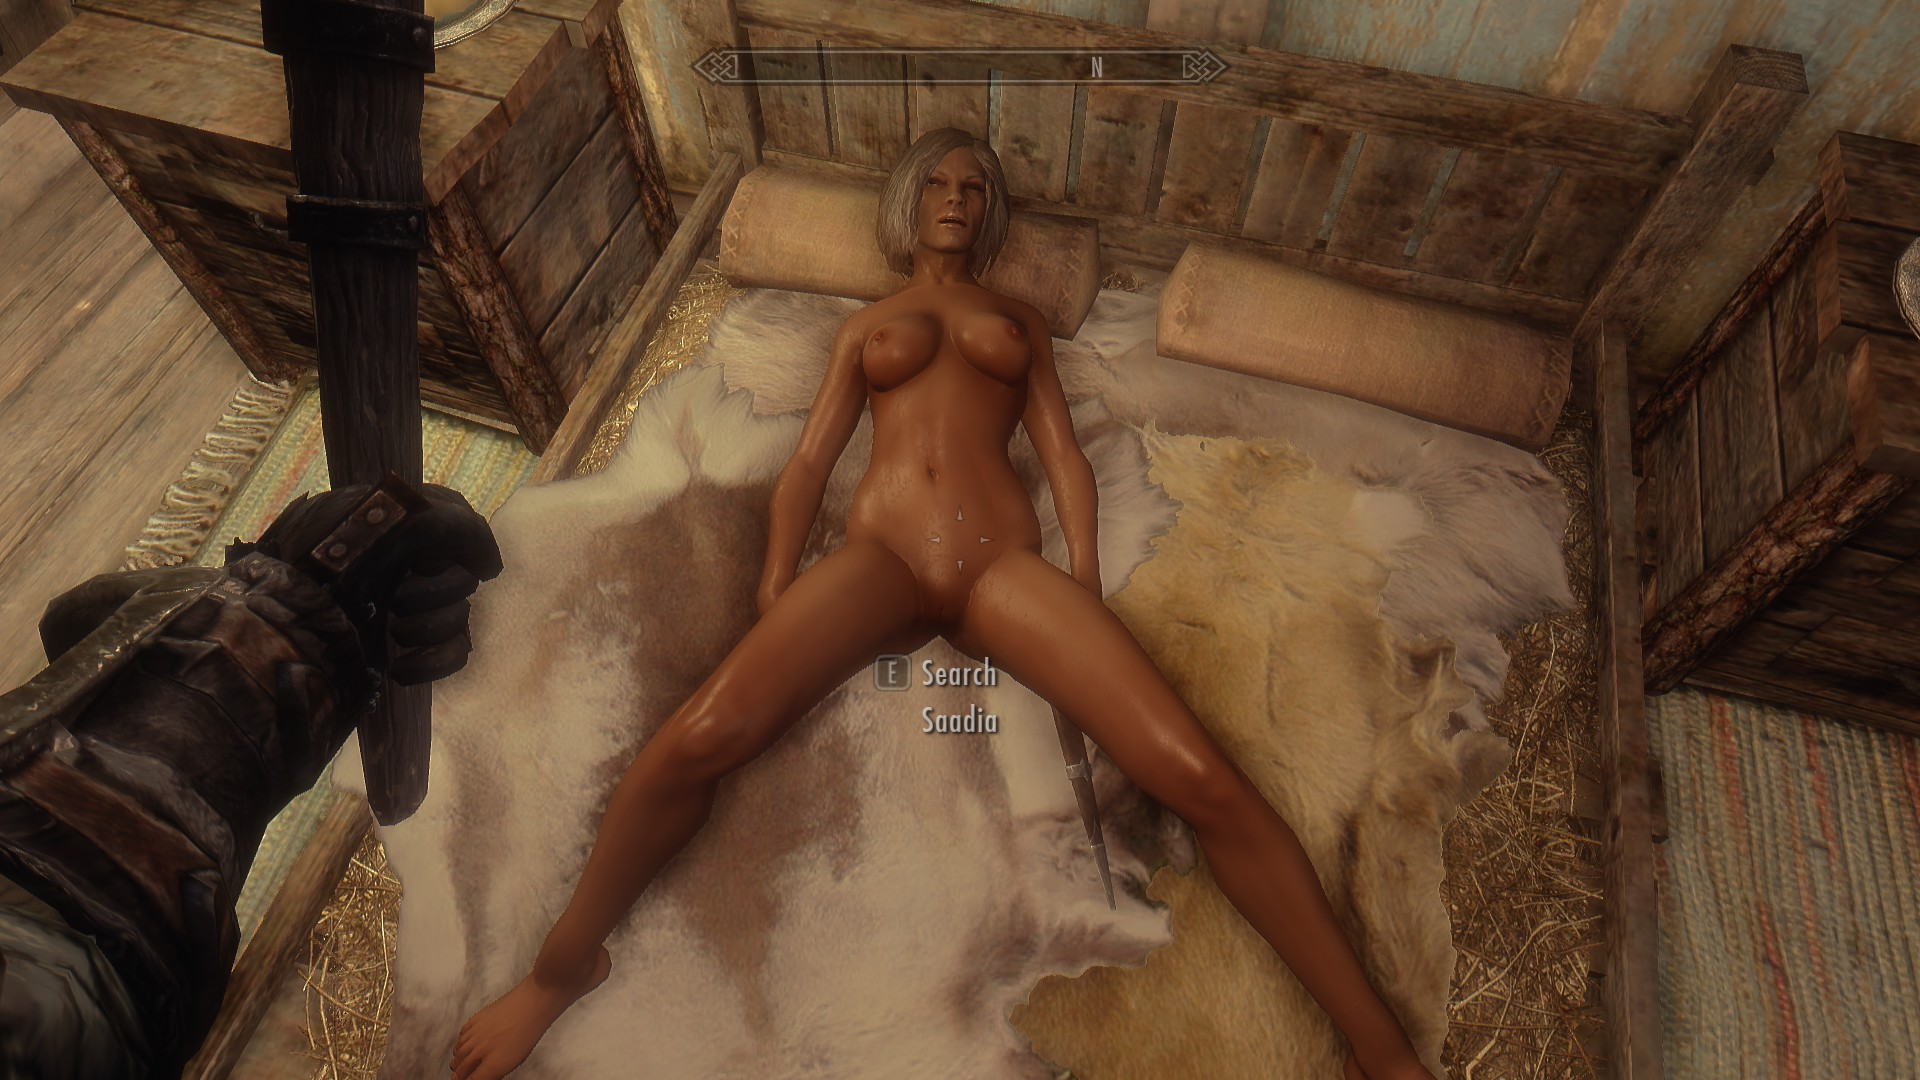 The elder scrolls sex mod naked pictures